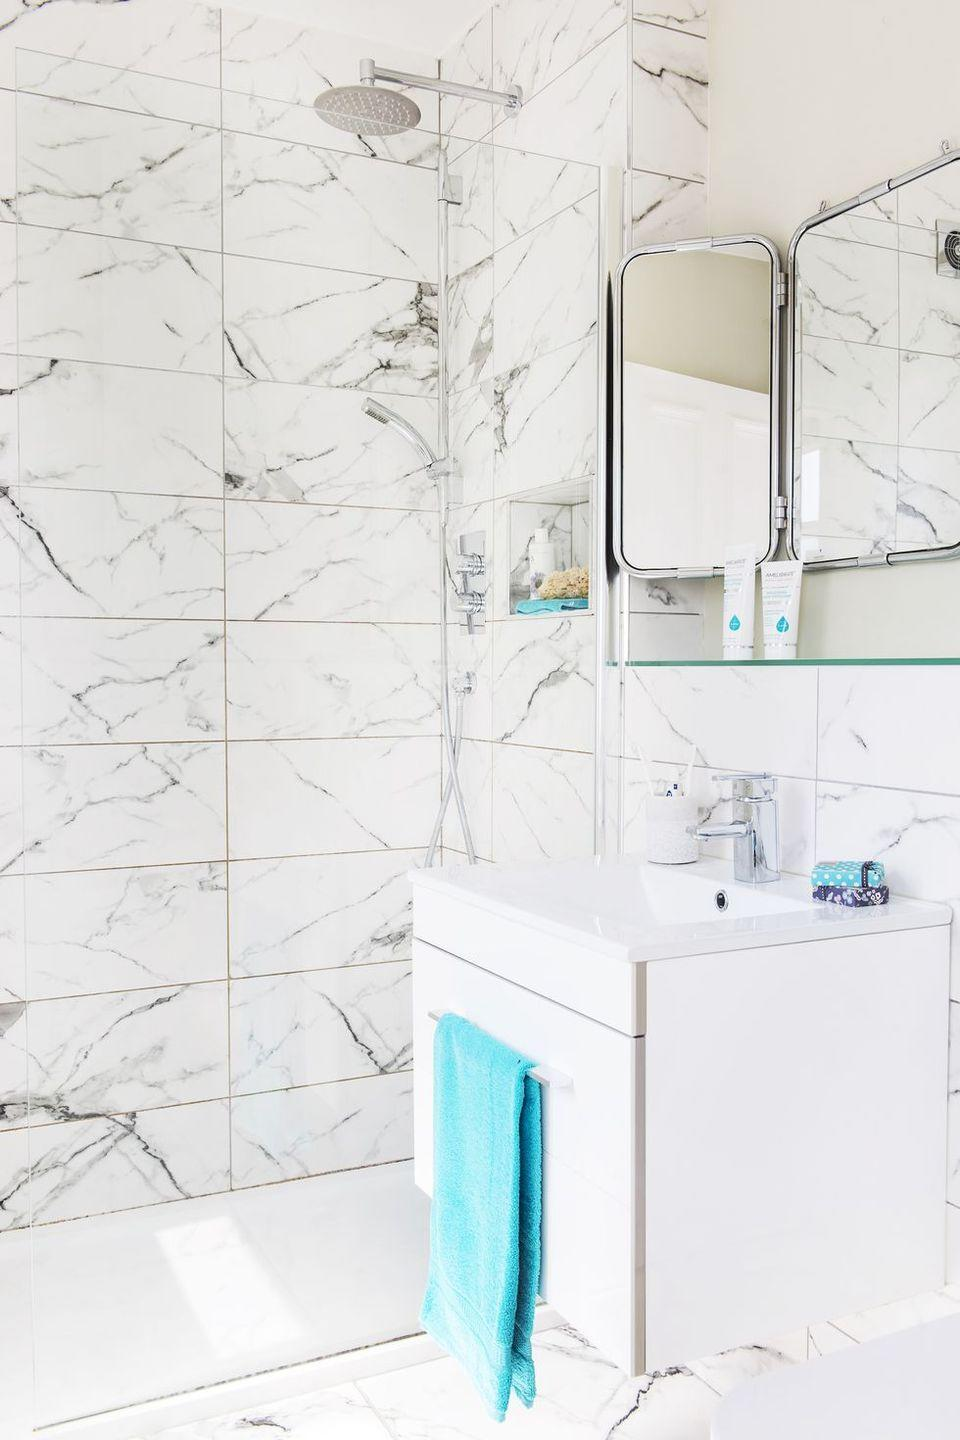 <p>White marble with light gray veins adds a sophisticated elegance to this shower design. </p>